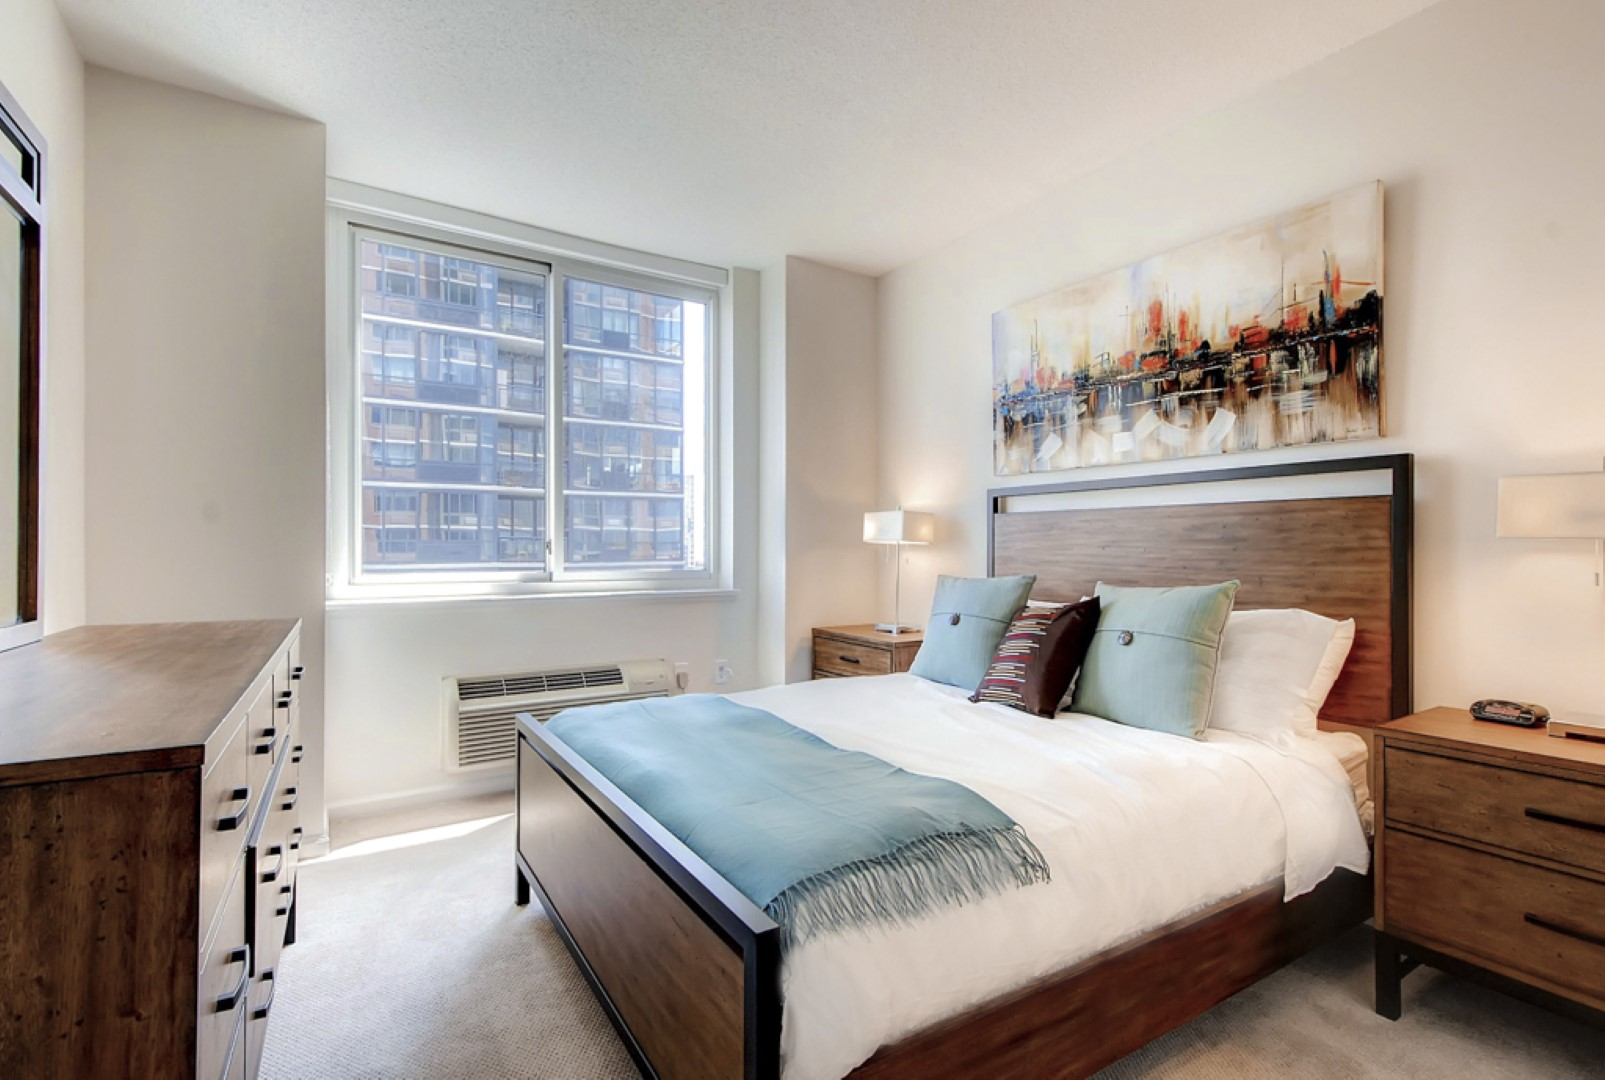 Bedroom at M2 Apartments, Hudson Exchange, Jersey City - Citybase Apartments